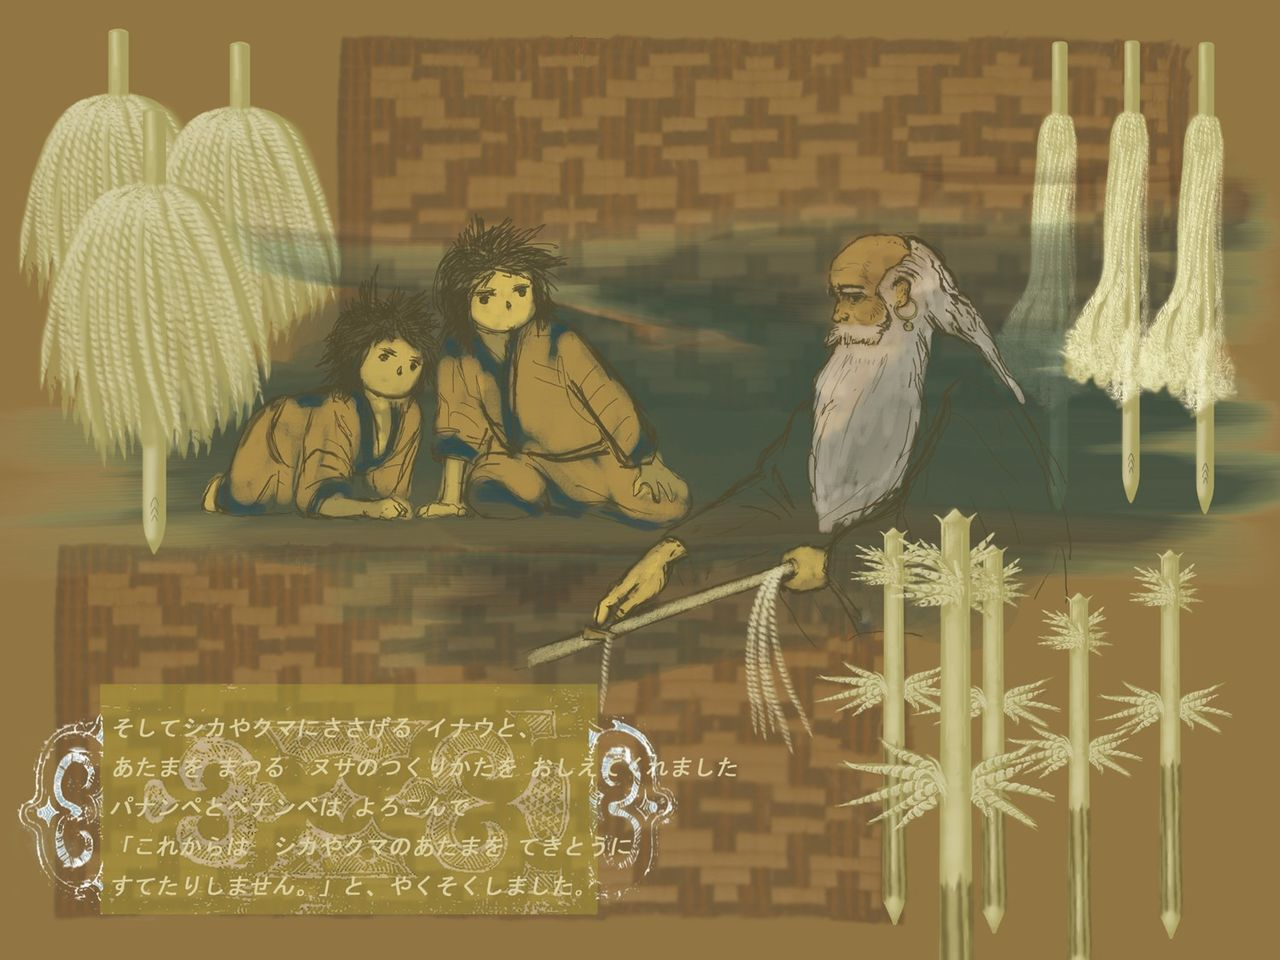 There are a number of comic Ainu stories about characters called Pananpe and Penanpe. In this story, the god of the sea teaches them how to worship.